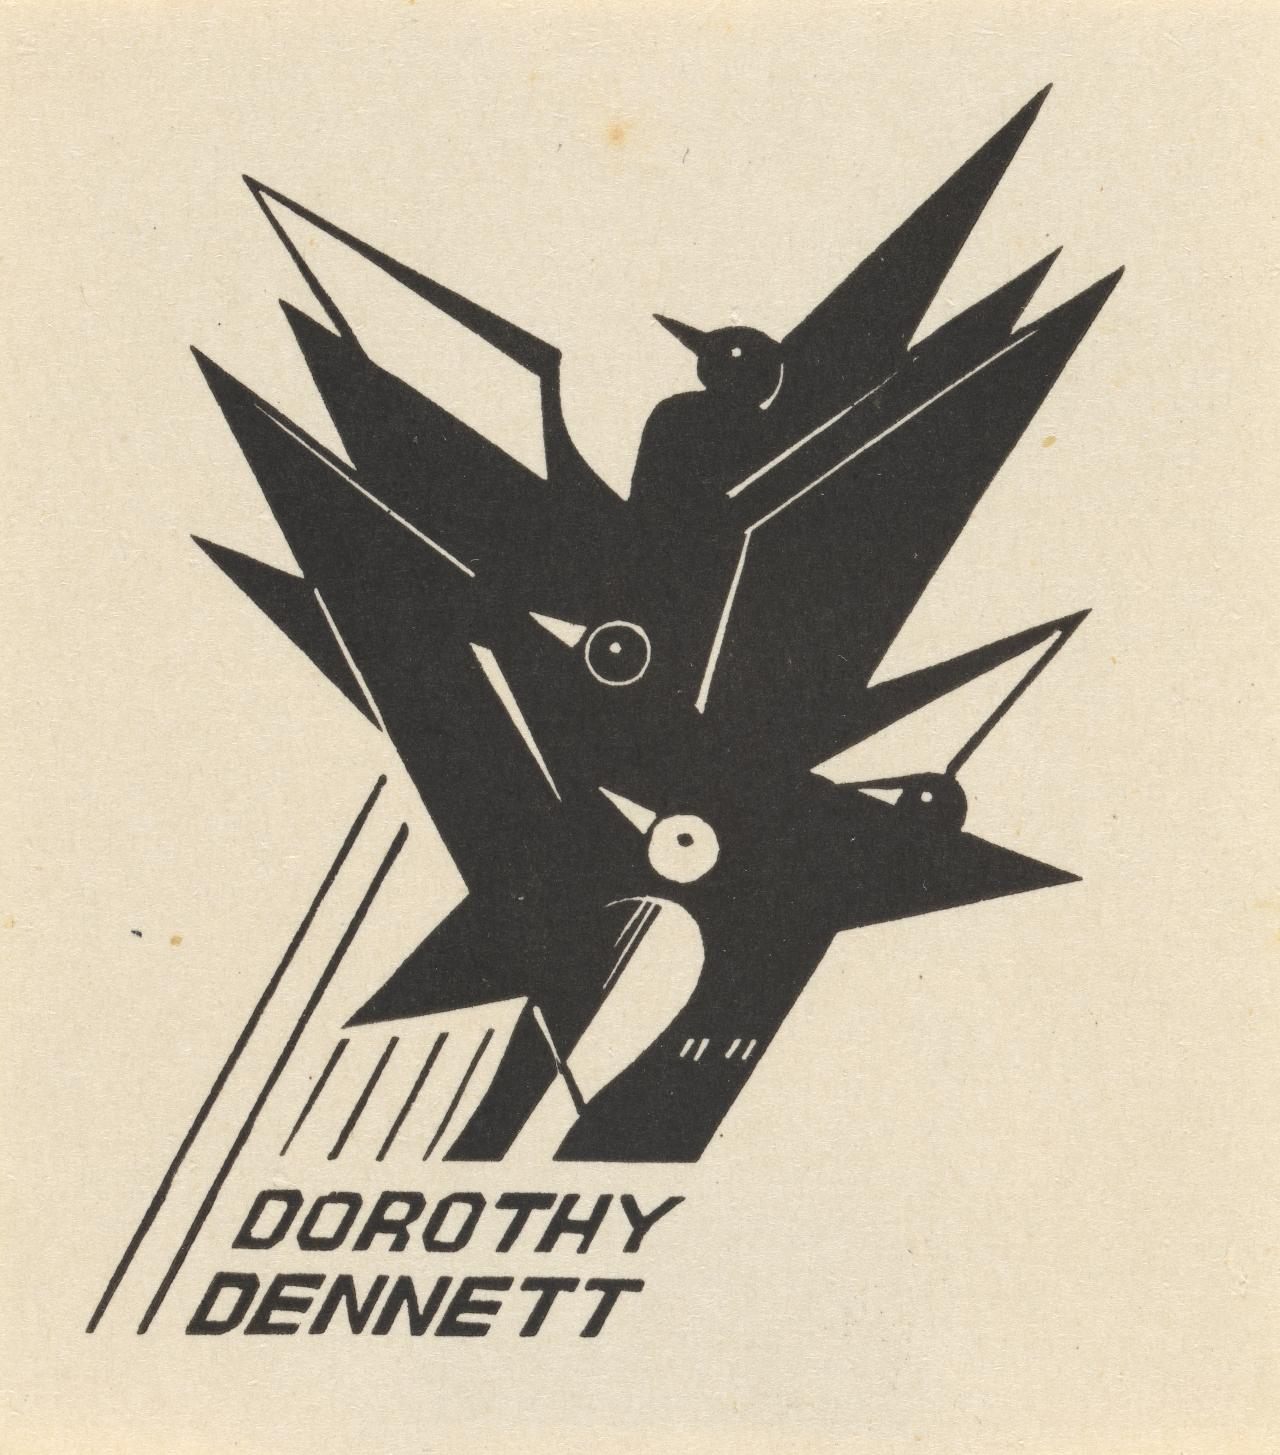 Bookplate: Dorothy Dennett (Geometric bird design)